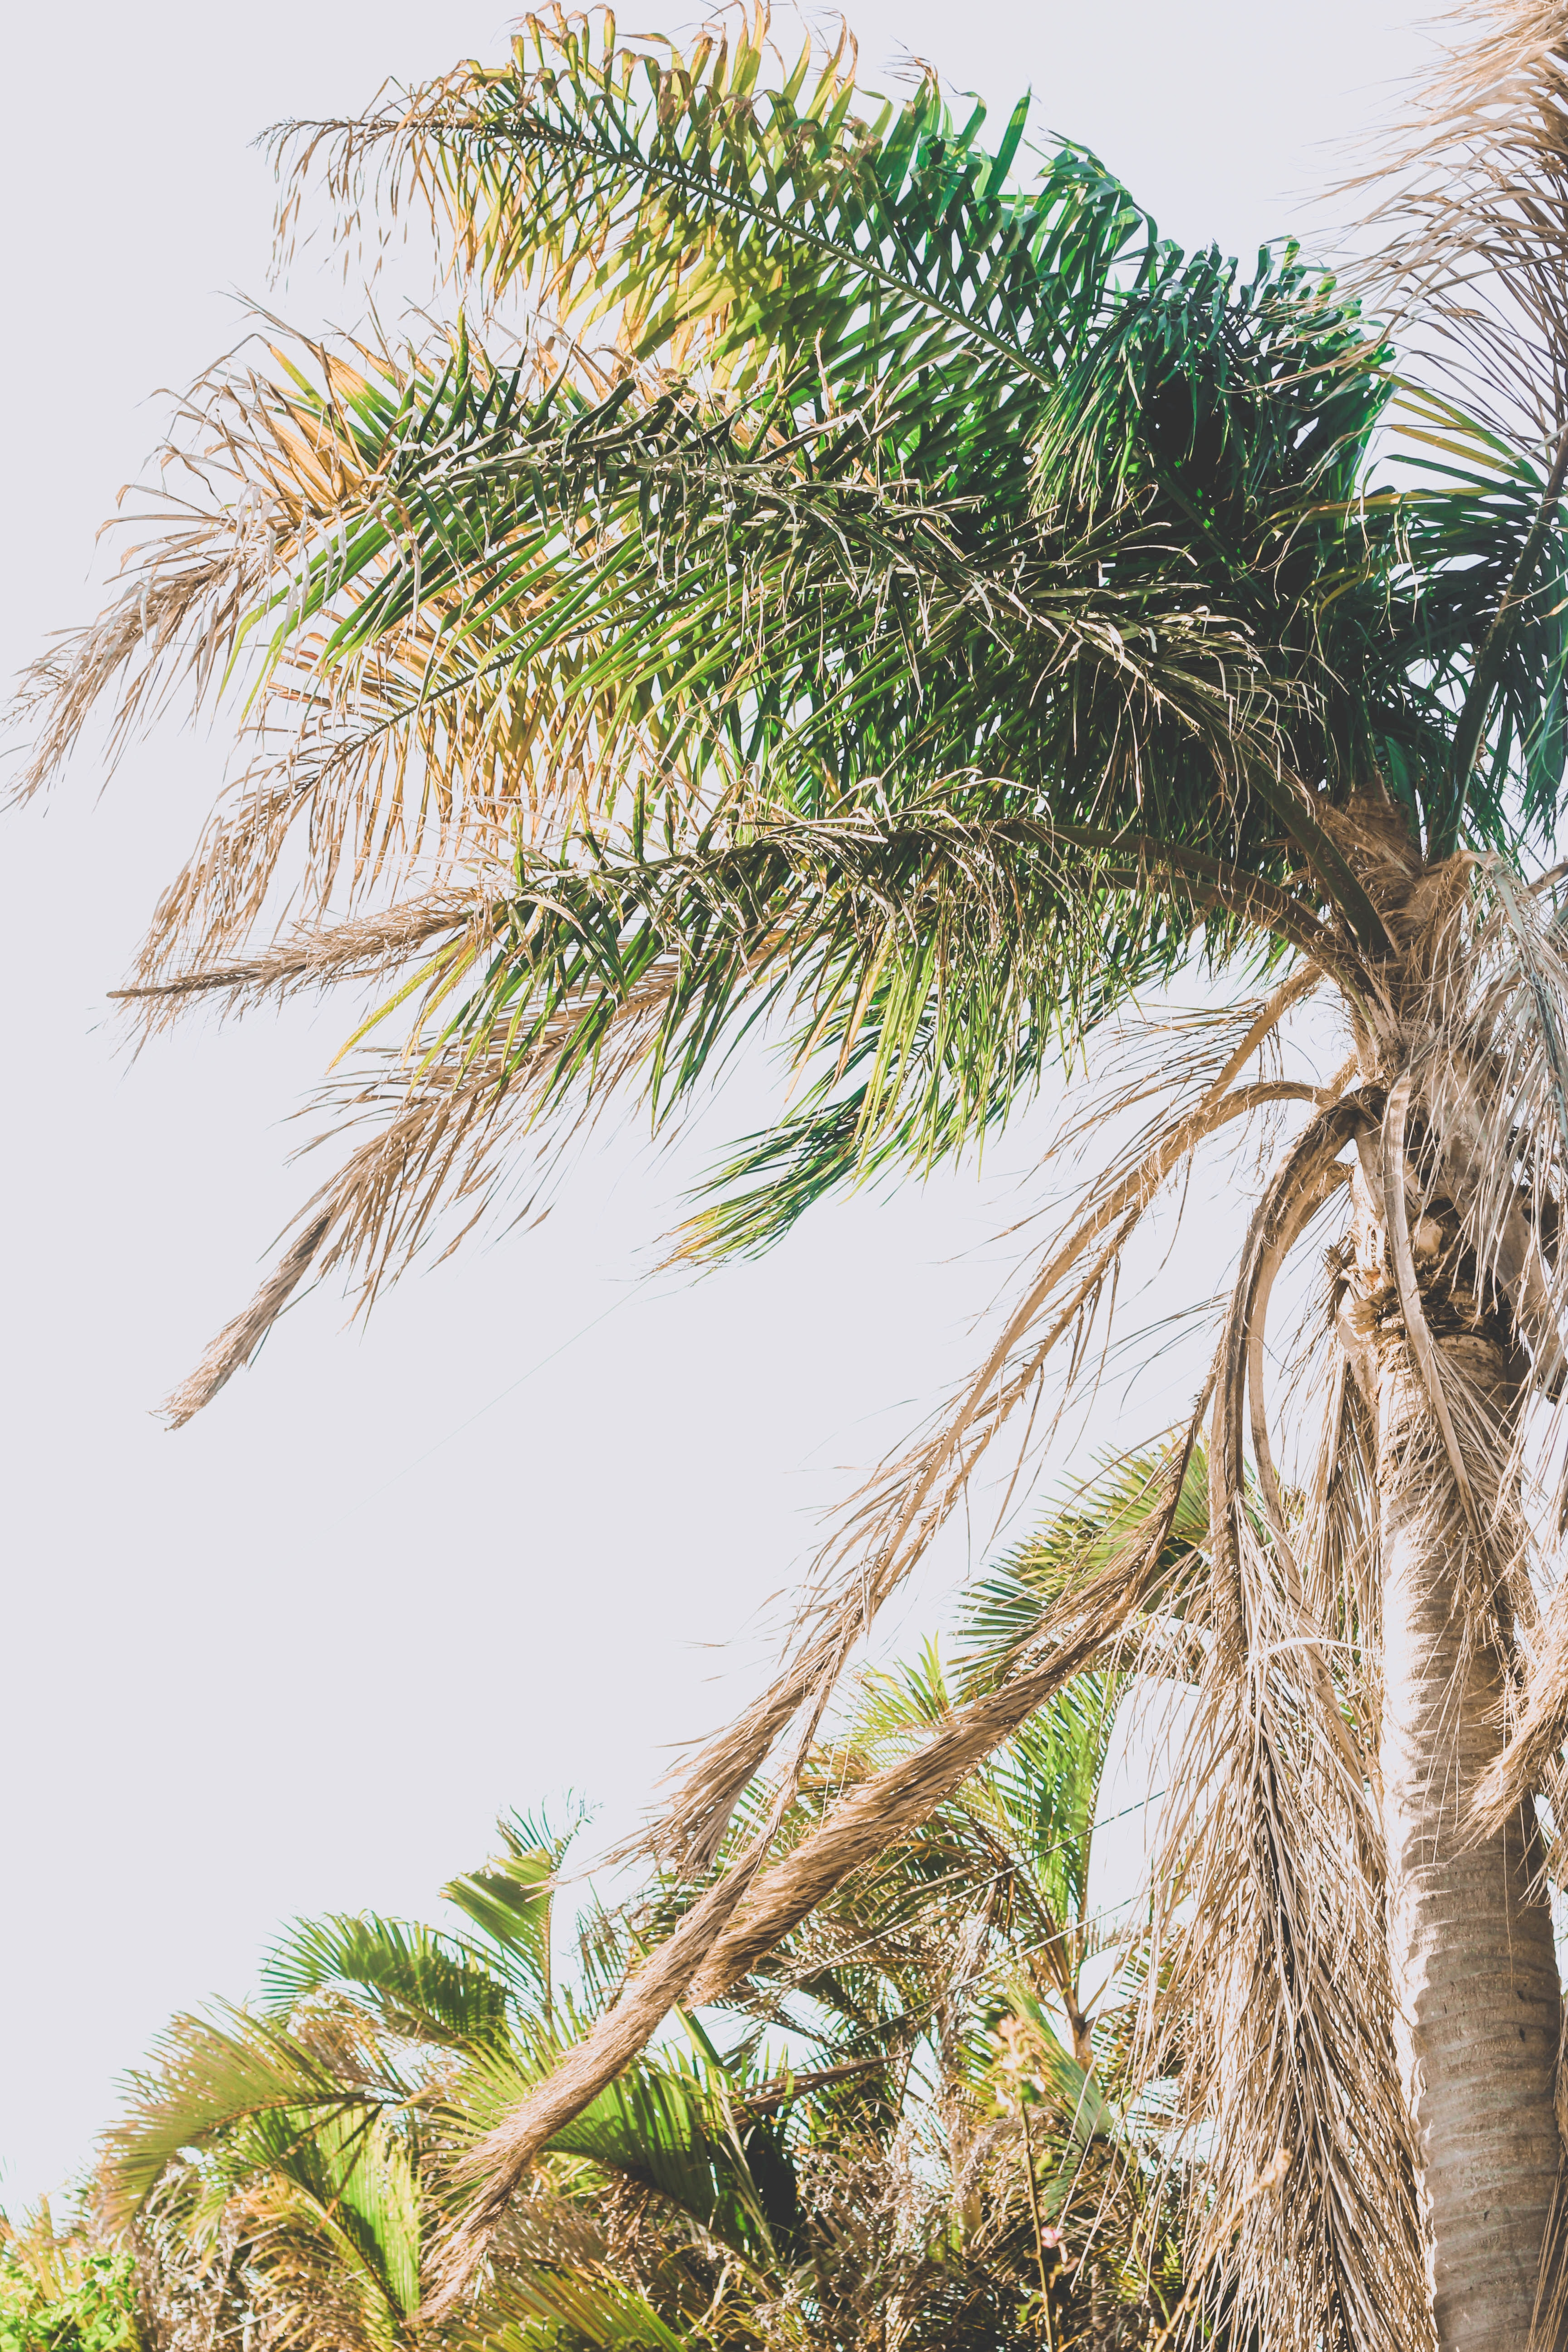 worm's eye view photo of coconut tree outdoors